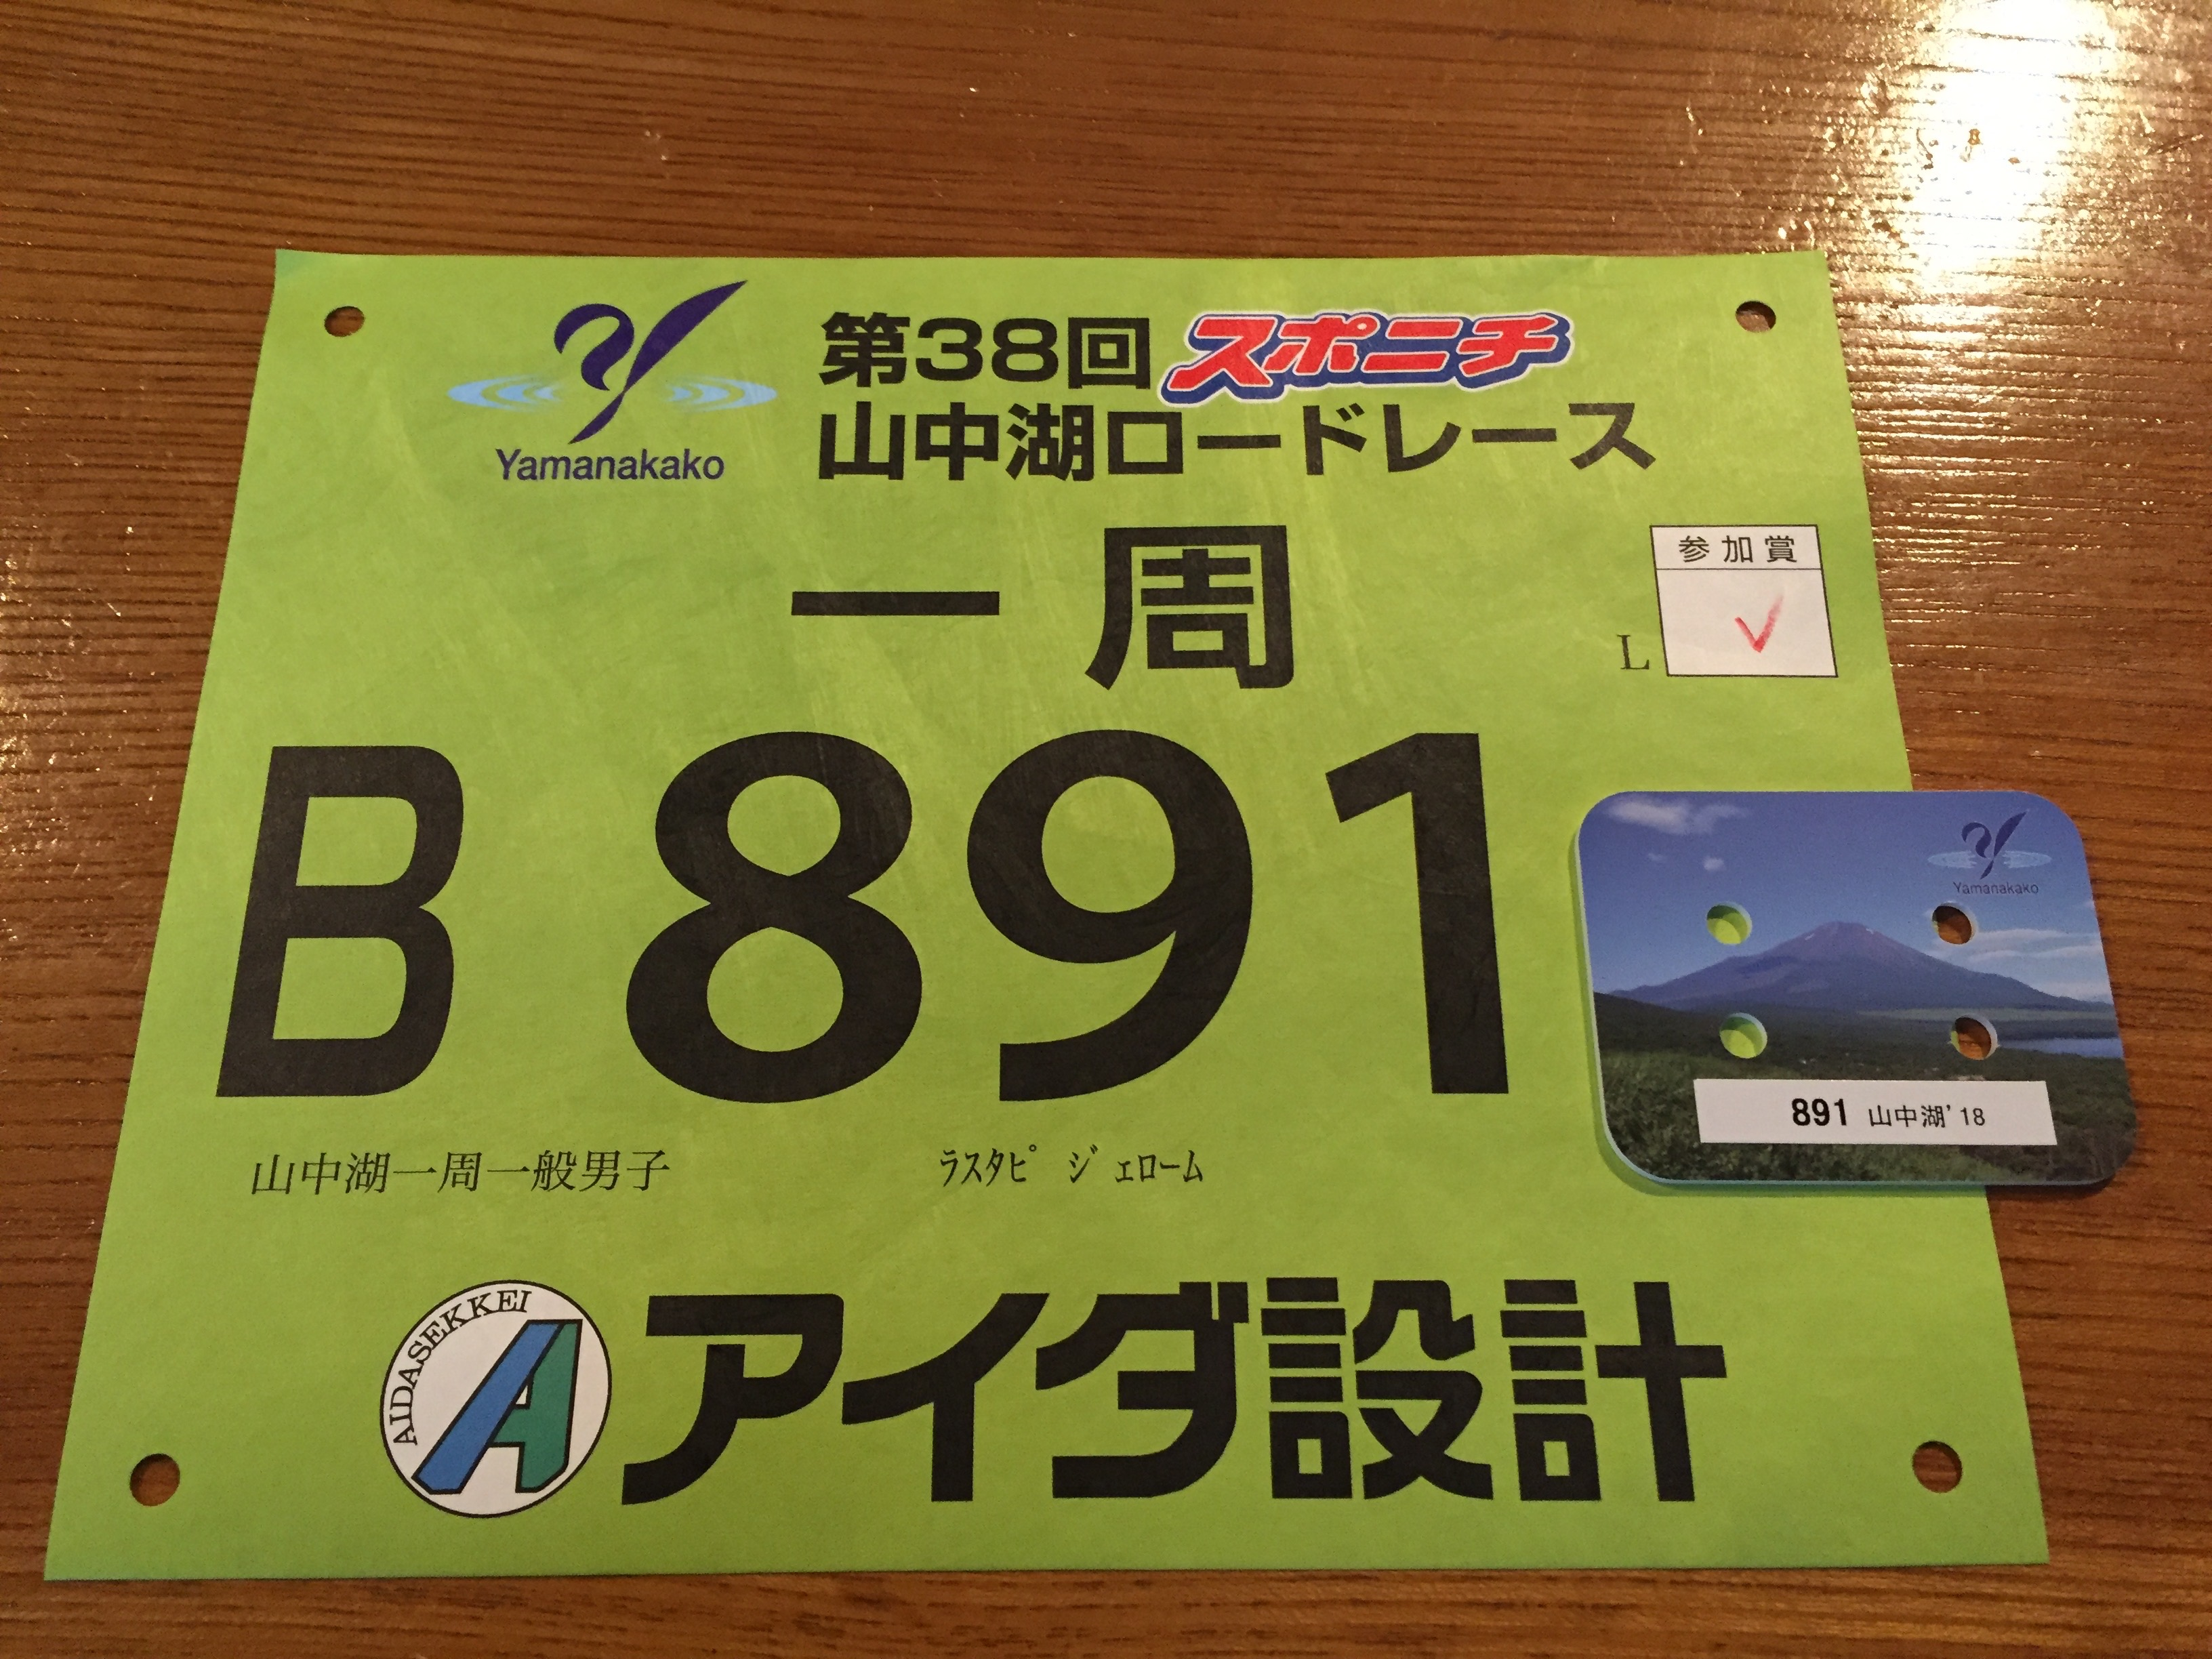 3776D, Yamanakako Road Race